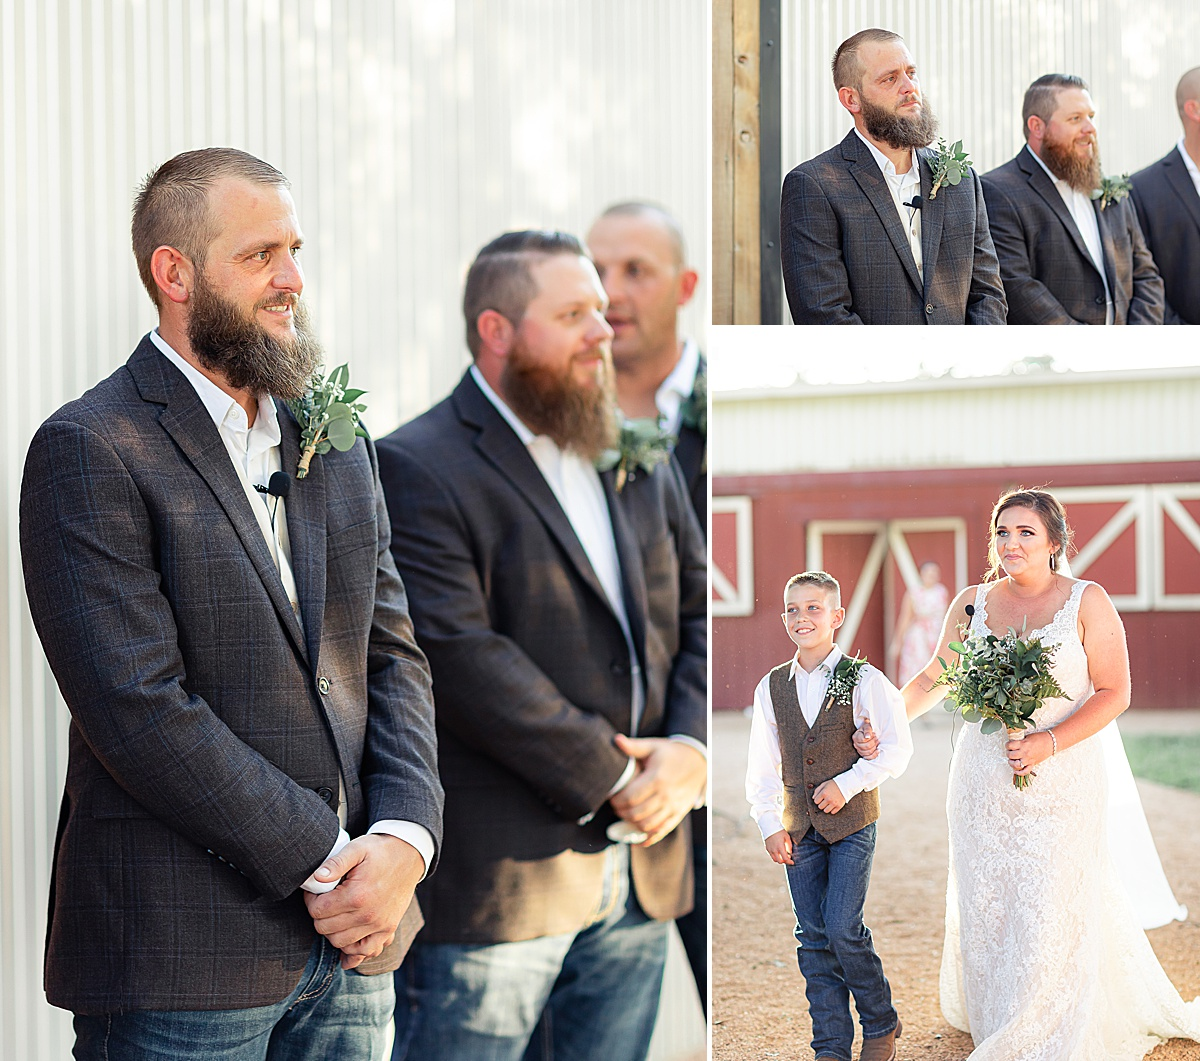 Rustic-Texas-Wedding-Hollow-Creek-Ranch-Carly-Barton-Photography_0106.jpg